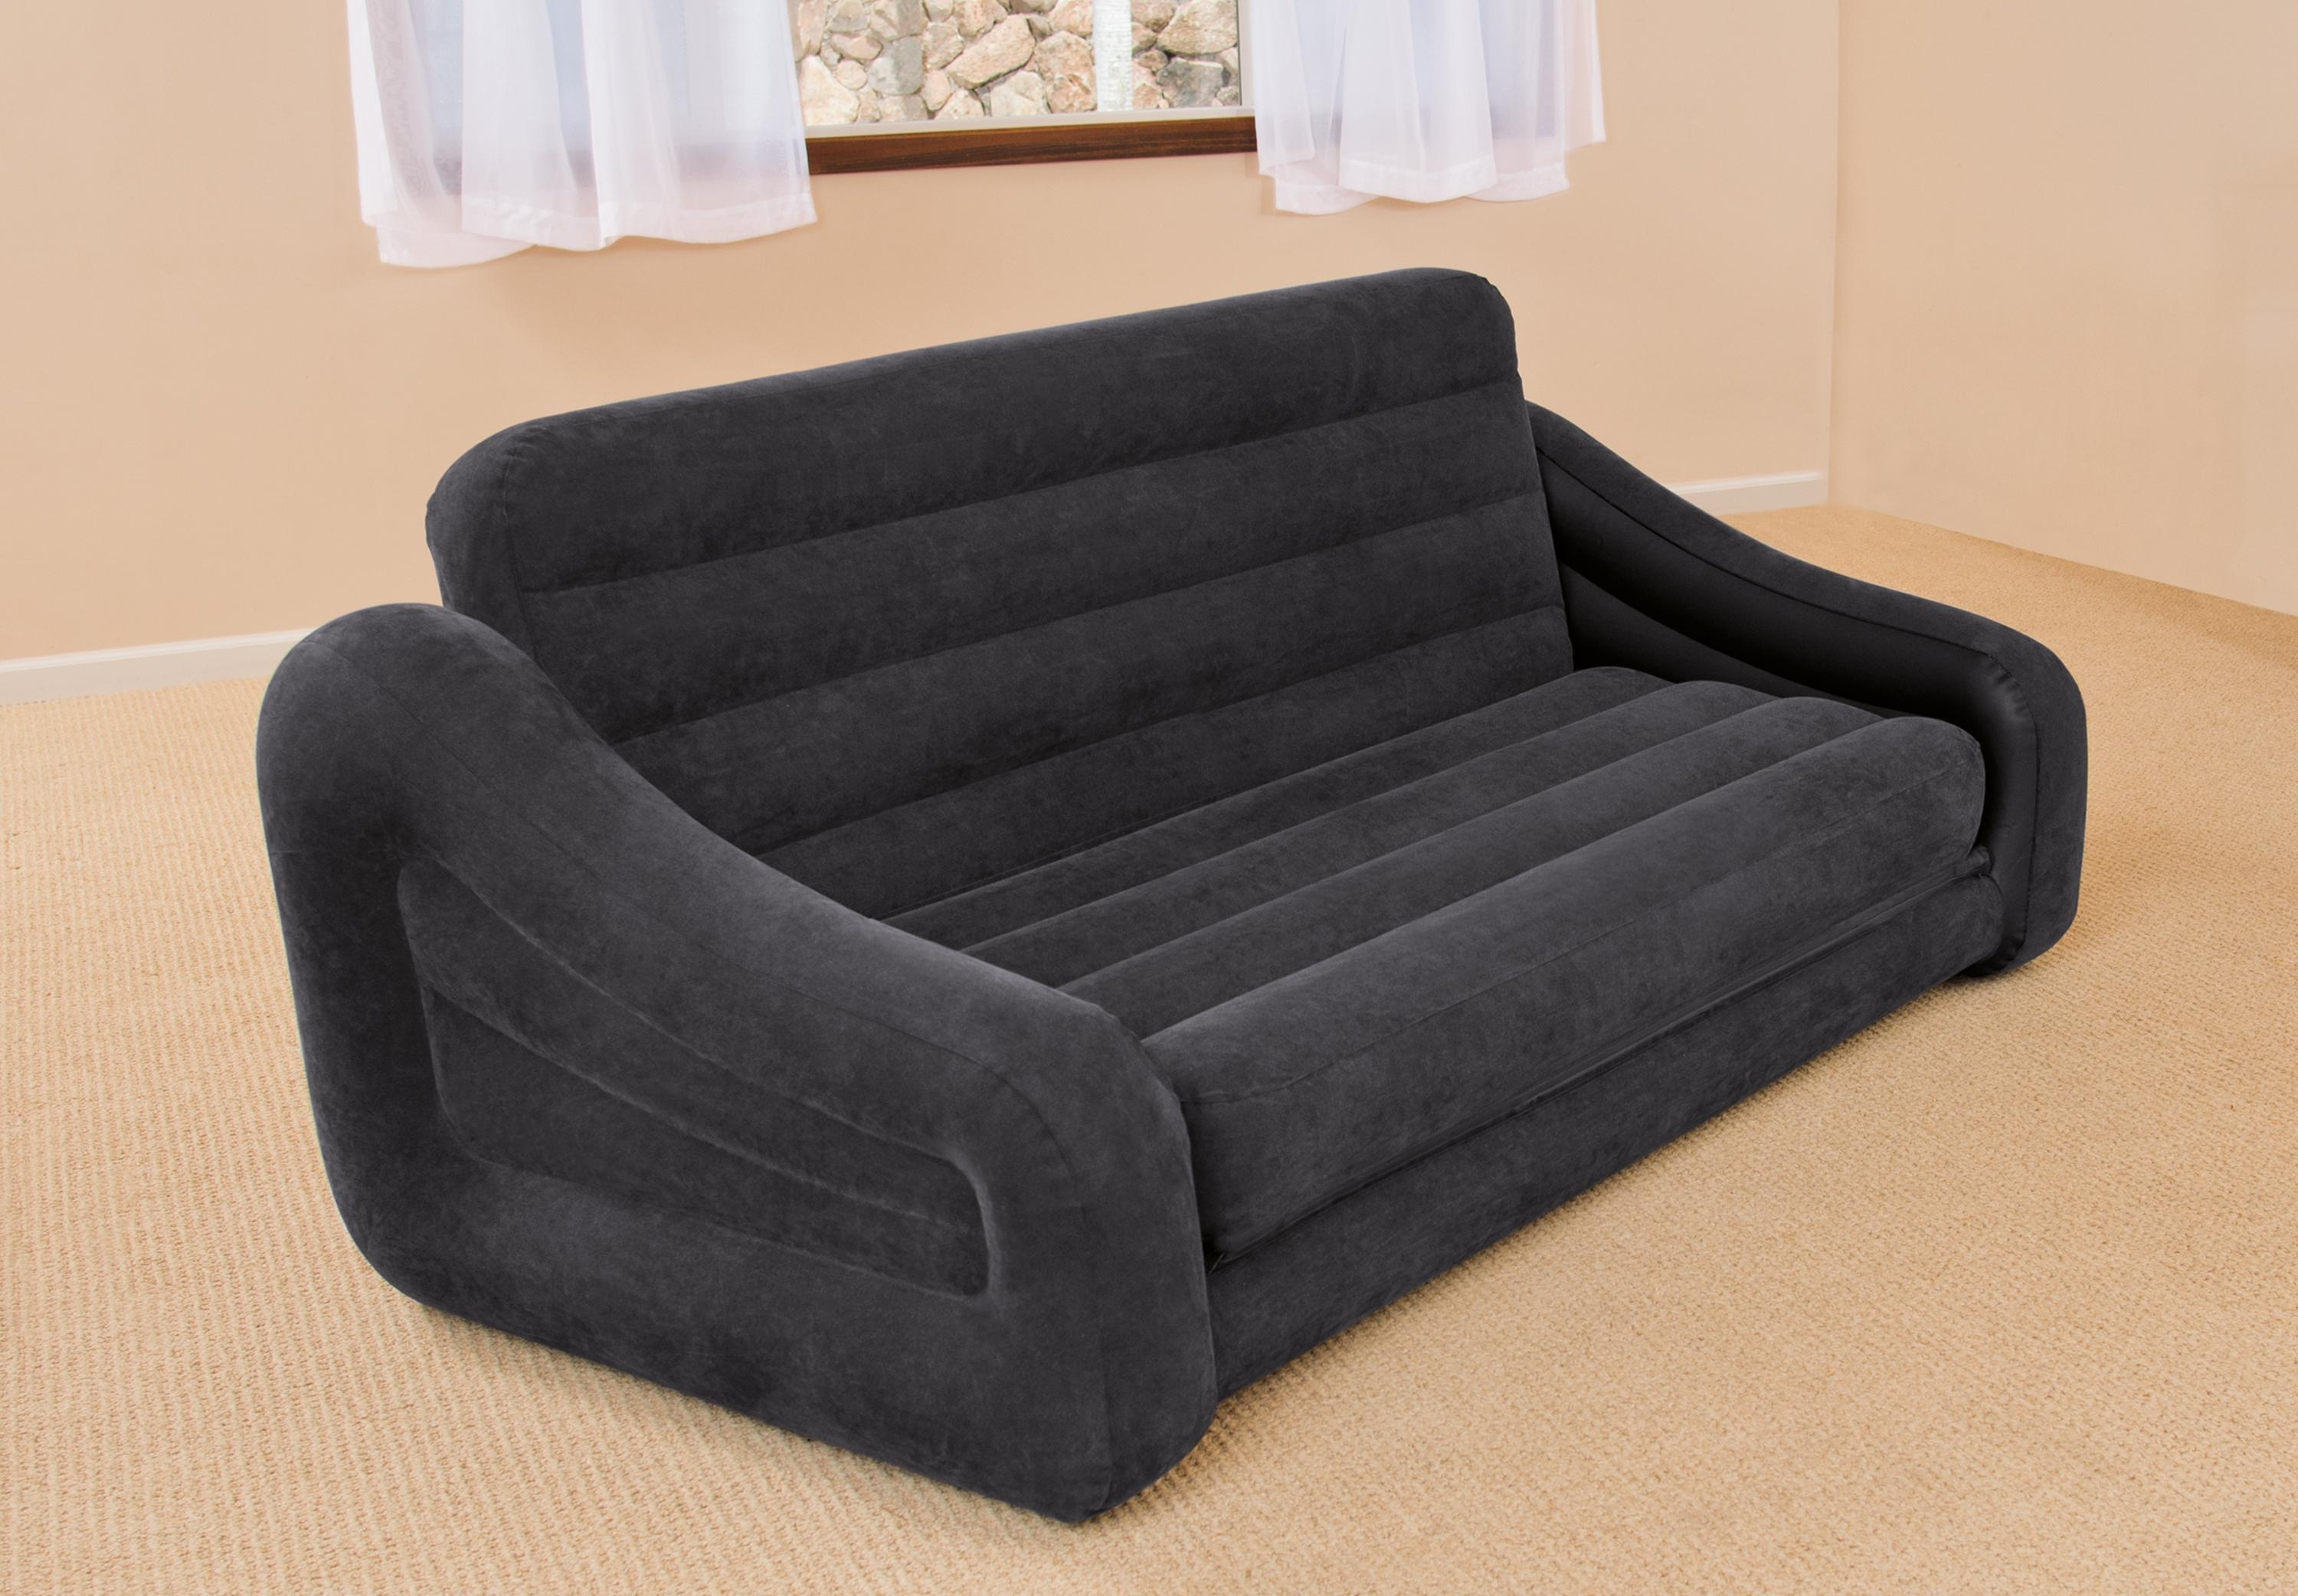 Intex Inflatable Pull Out Sofa & Queen Bed Mattress Sleeper W/ Ac Pertaining To Intex Air Sofa Beds (Image 13 of 20)